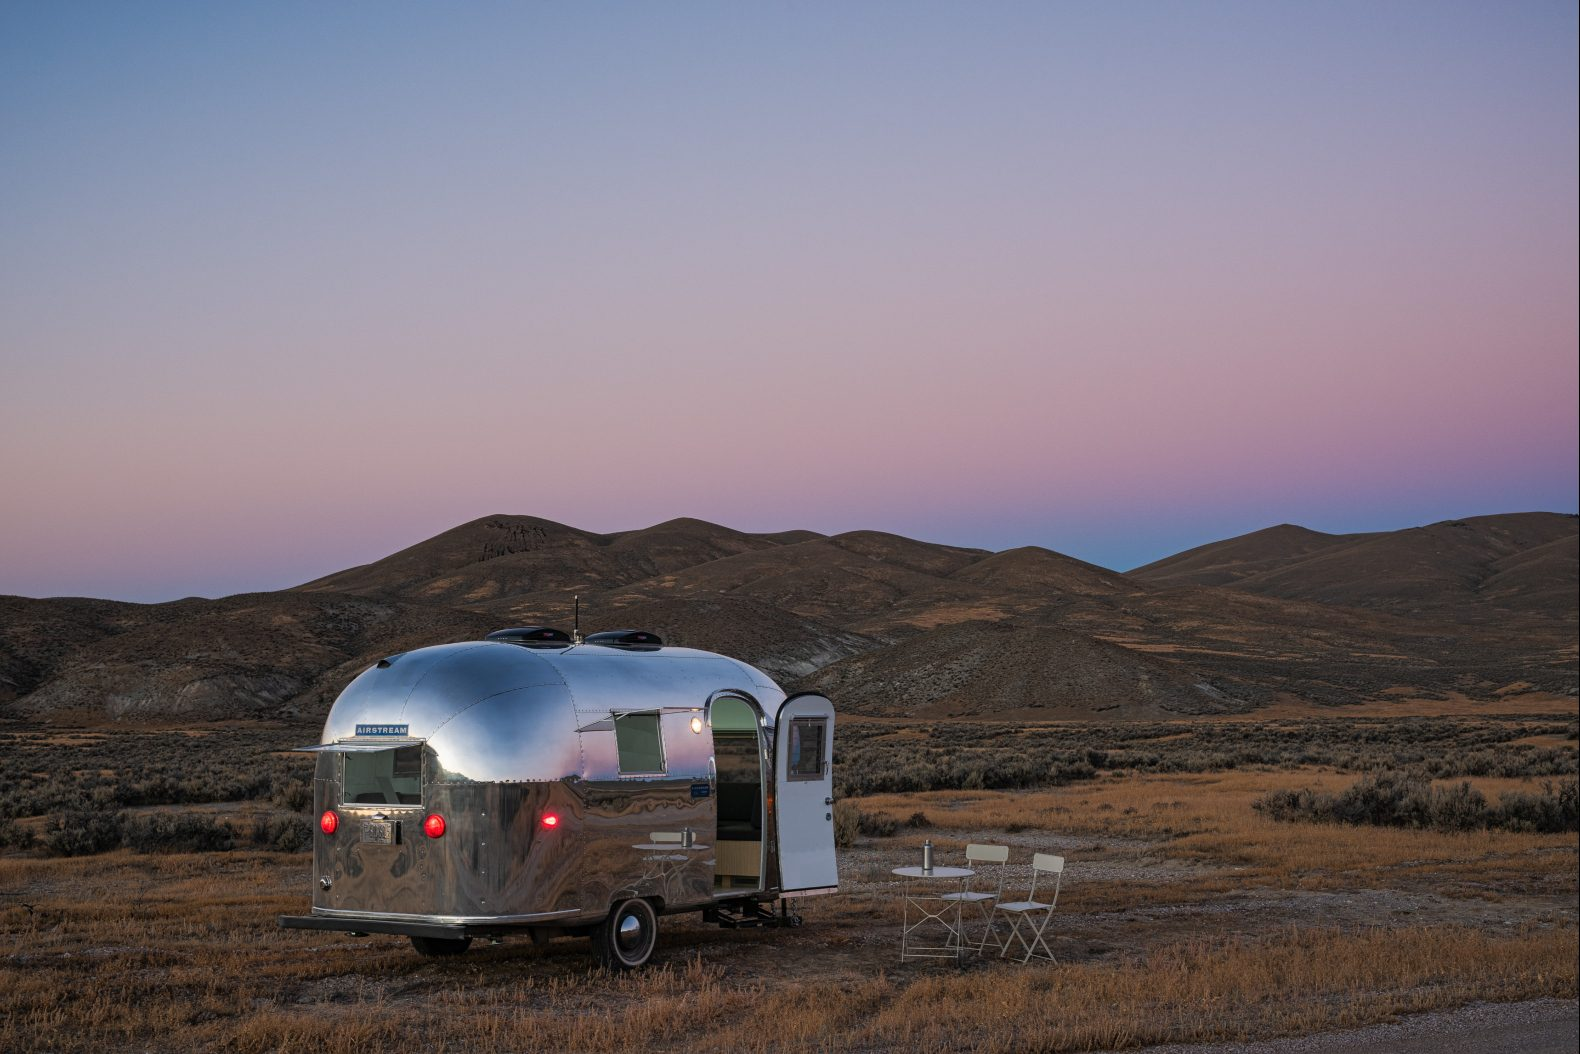 A rare 'Bambi' Airstream trailer becomes a stunning mobile office